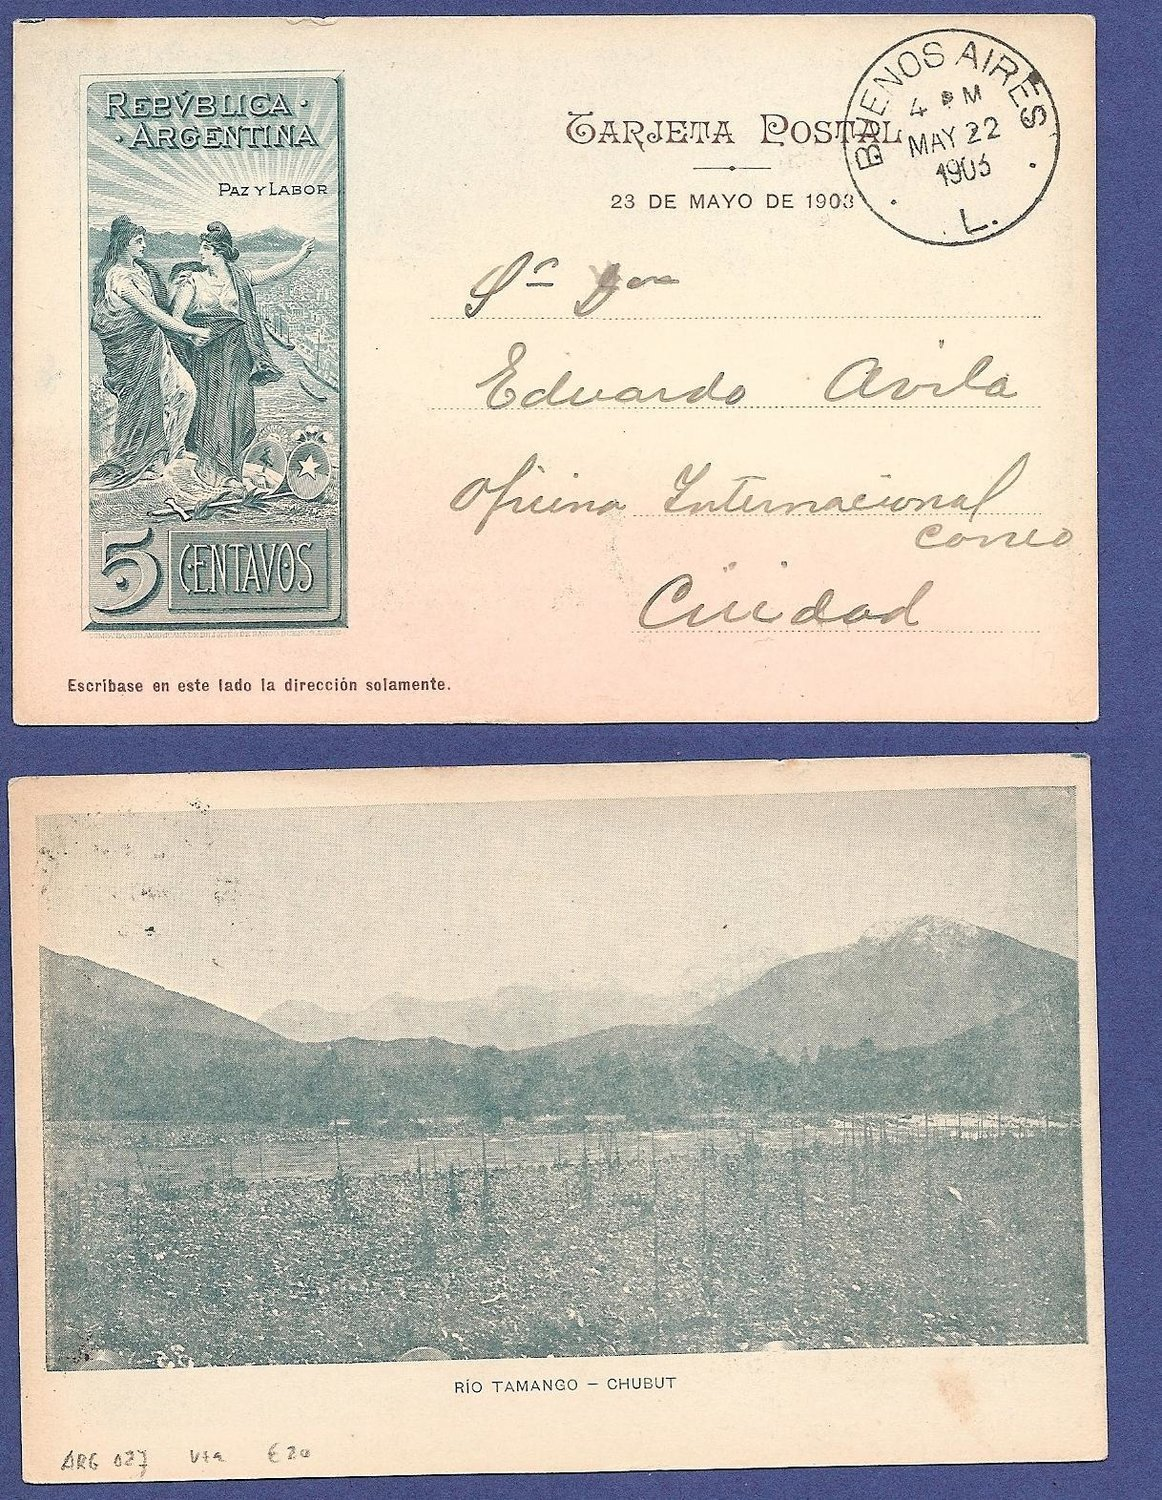 ARGENTINA illustrated postal card 1903 Rio Tamango - Chubut